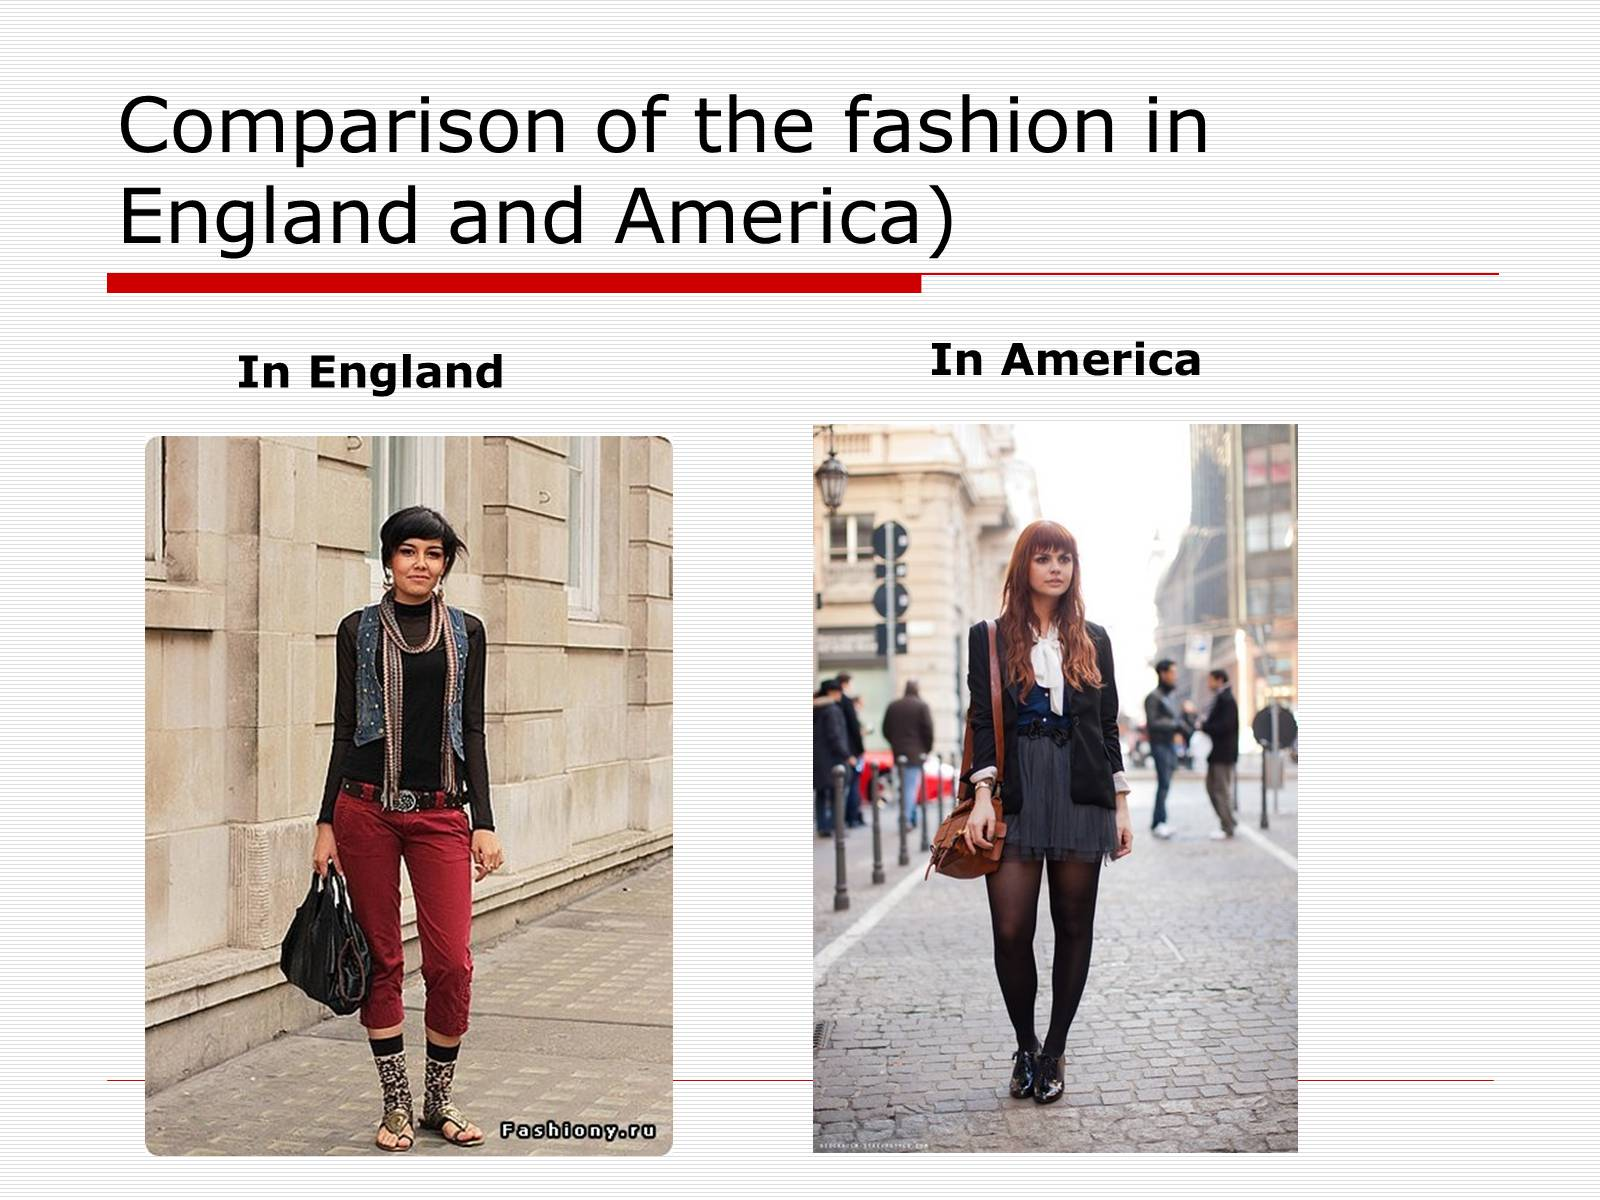 Презентація на тему «Comparison of the fashion in England and America» - Слайд #28